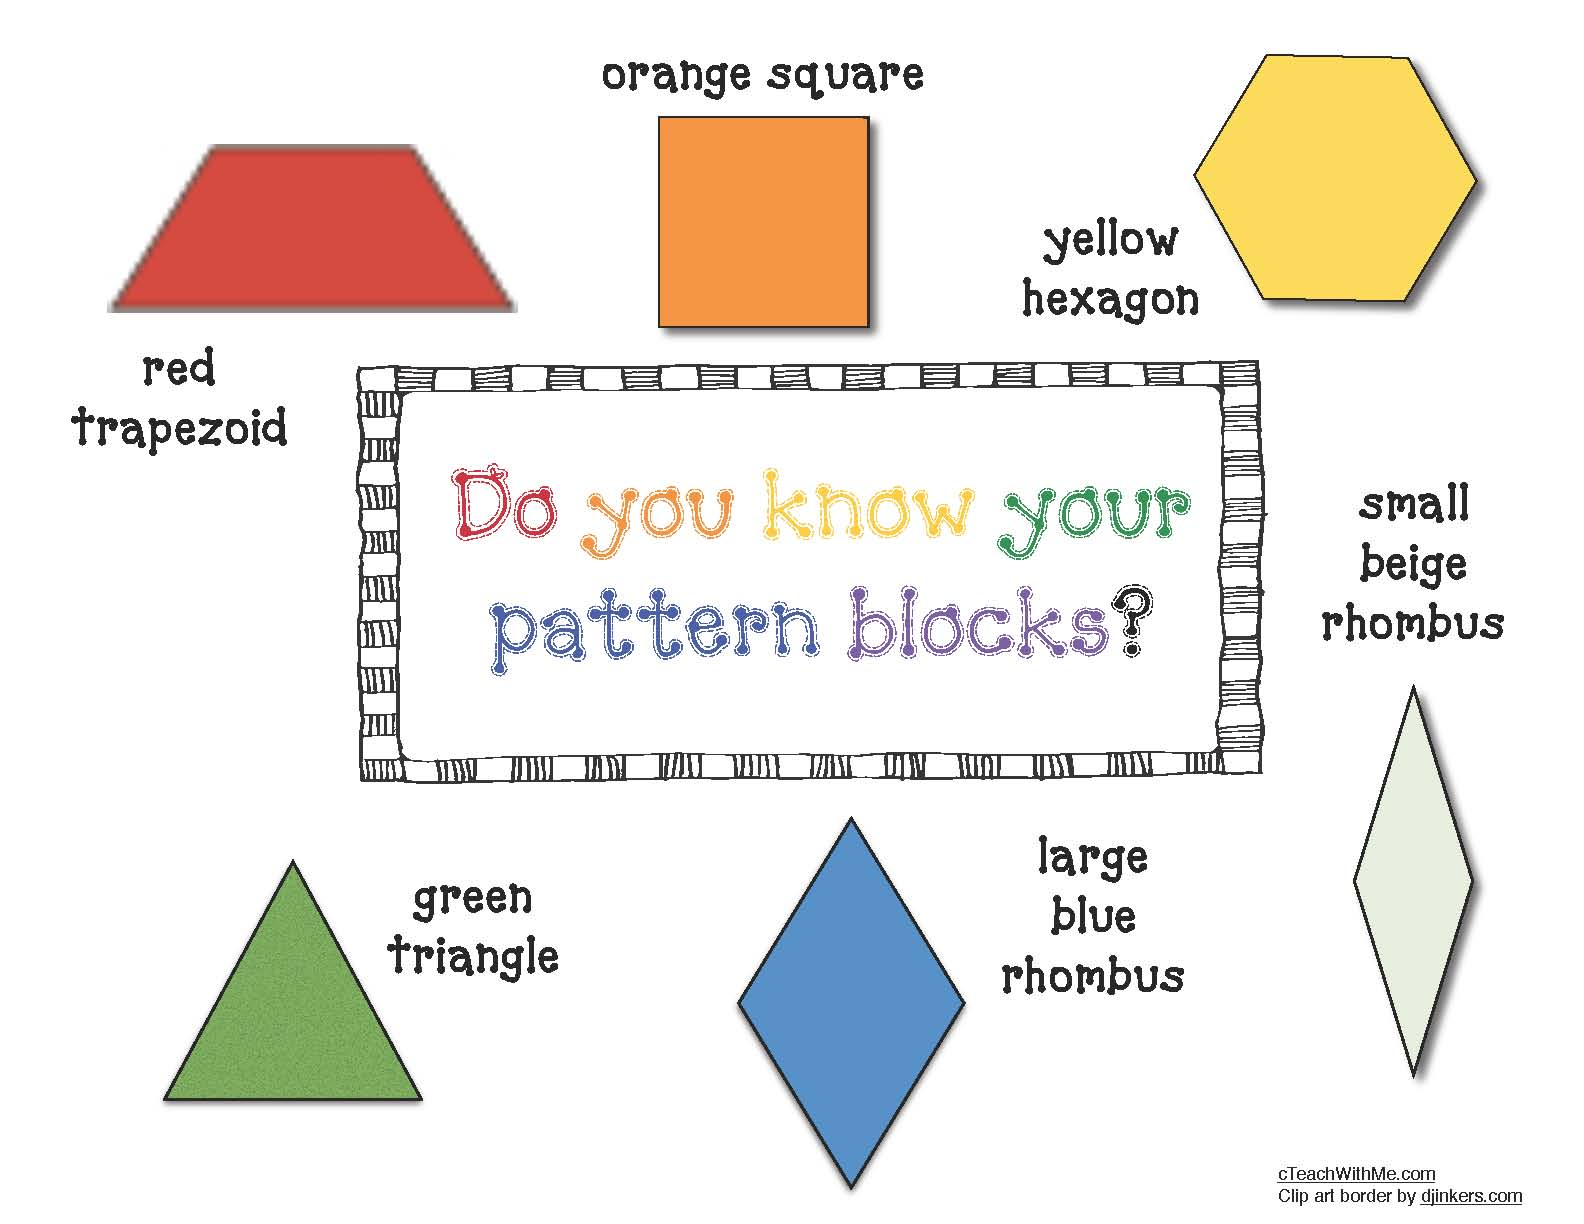 pattern blocks, pattern block activities, pattern block games, pattern block mats, 20 free pattern block mats, fractions with pattern blocks, pattern block pattern cards, pattern block alphabet cards, pattern block number cards, pattern block posters, pattern block math activities, shape activities, shape posters, traceable pattern blocks, pattern block templates